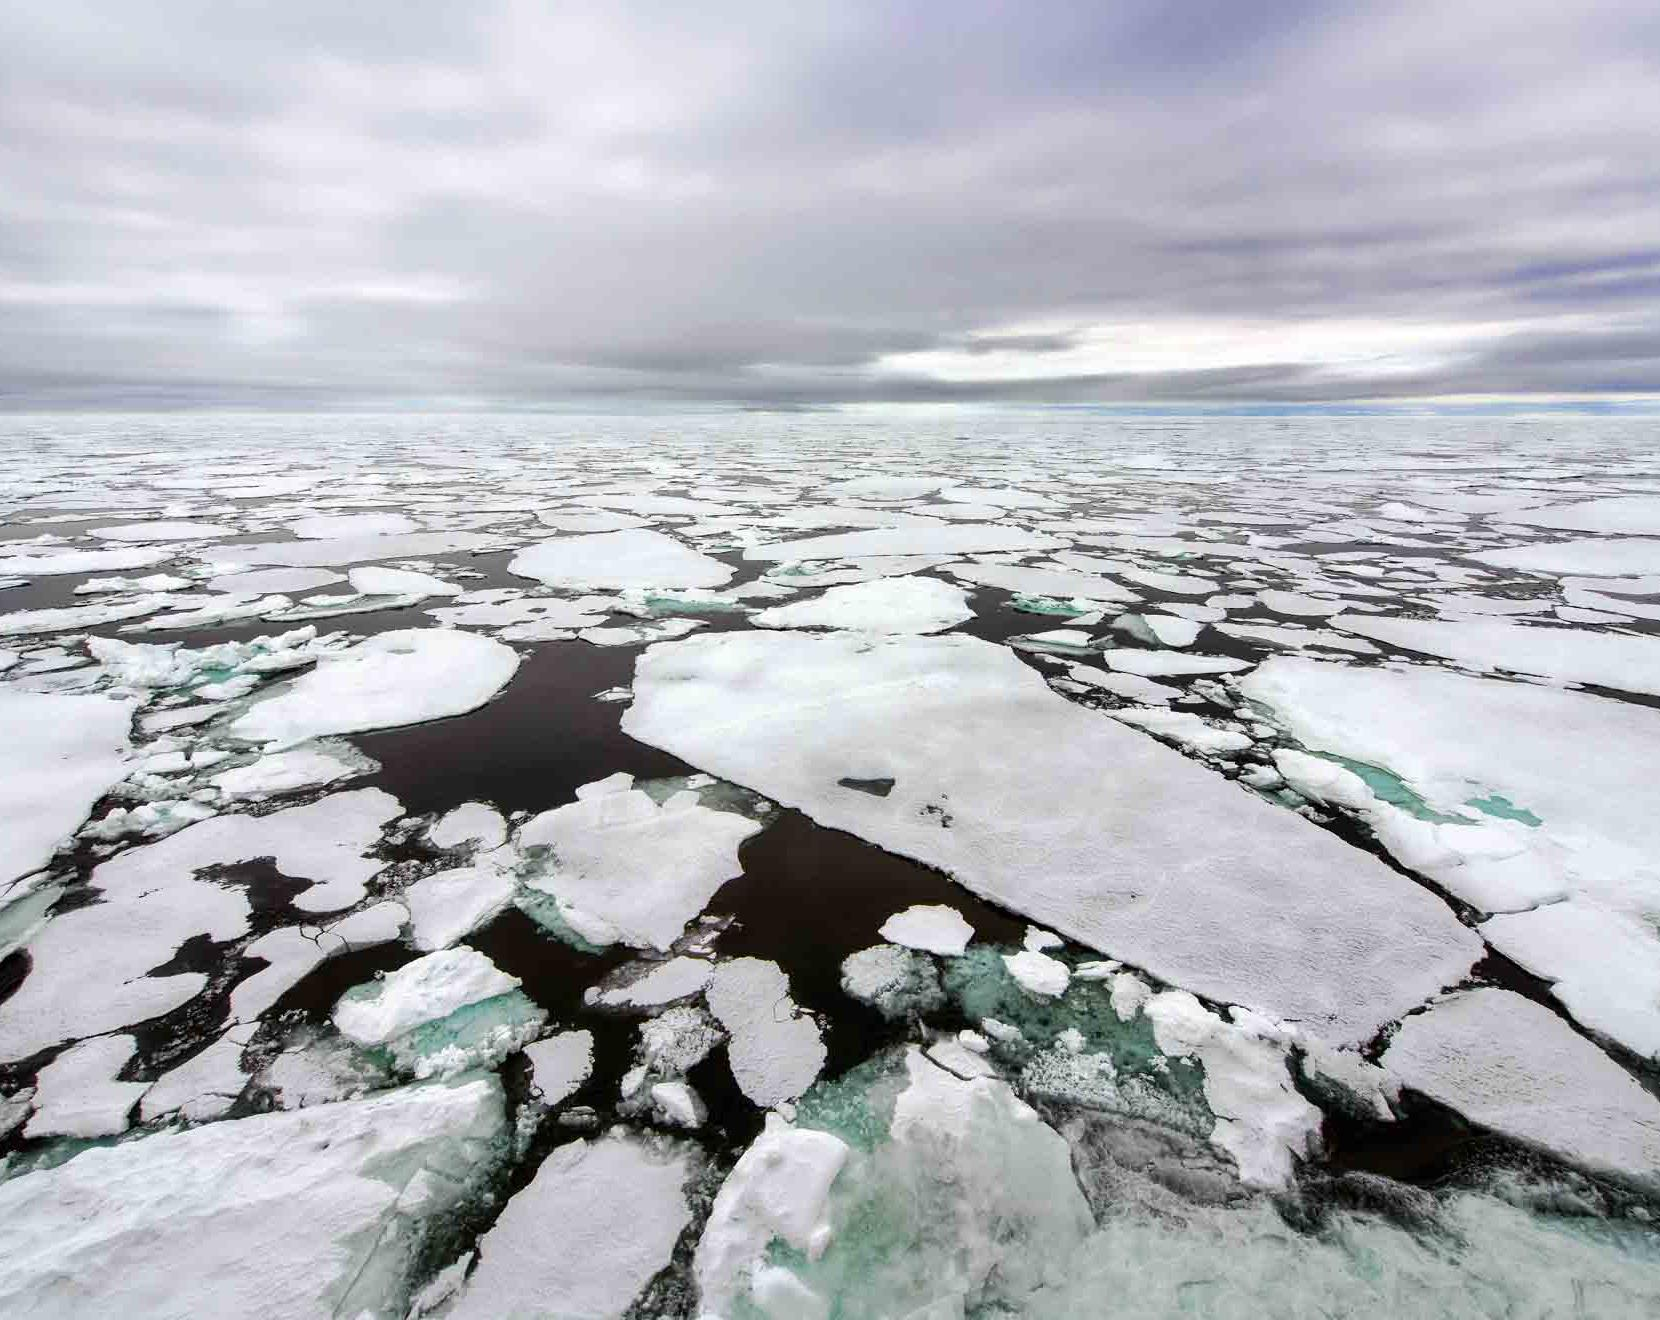 The Role of New England in Navigating the New Arctic